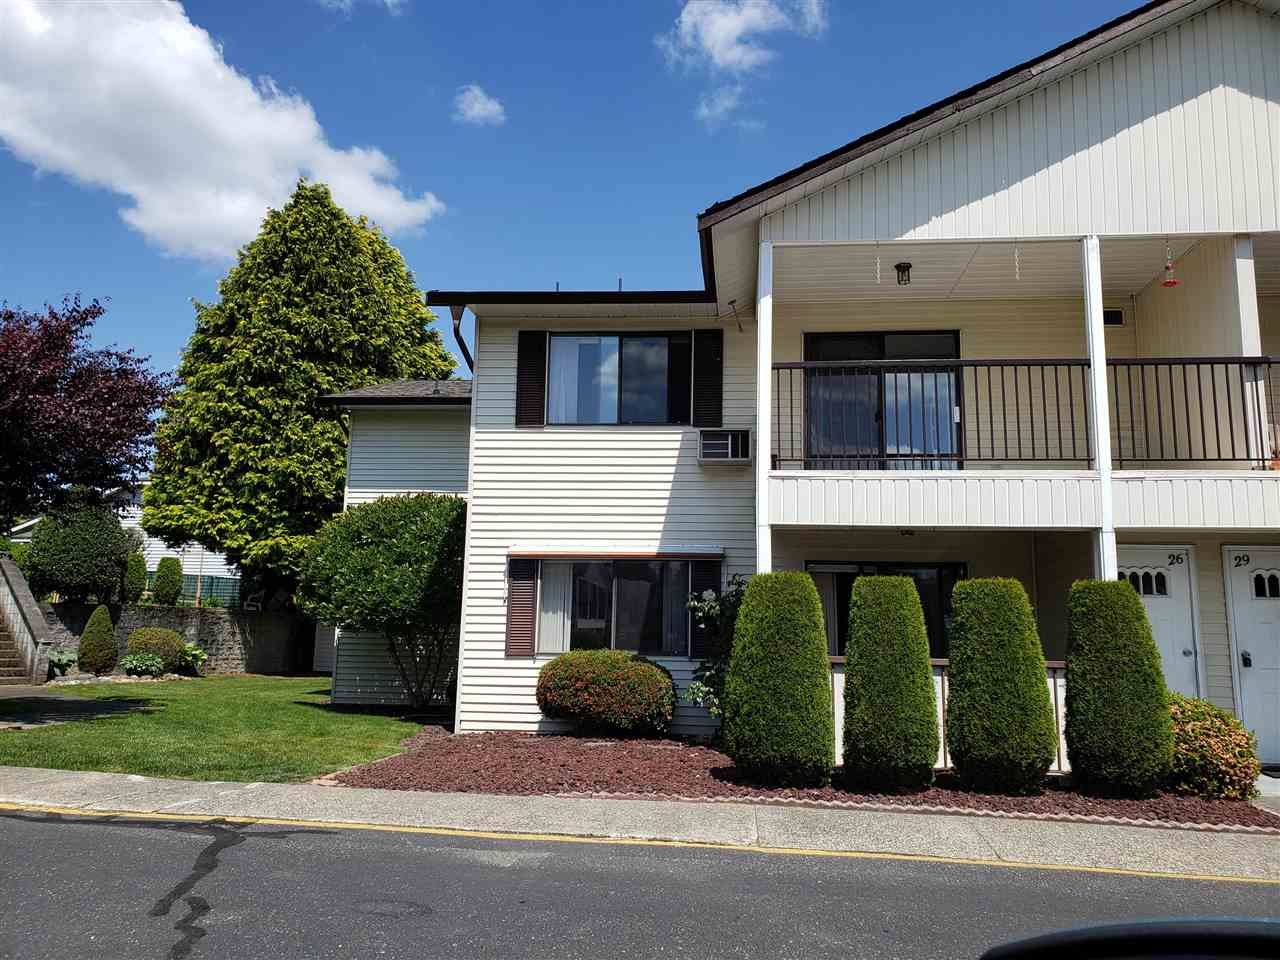 """Main Photo: 29 32959 GEORGE FERGUSON Way in Abbotsford: Central Abbotsford Townhouse for sale in """"Oakhurst Park"""" : MLS®# R2588253"""